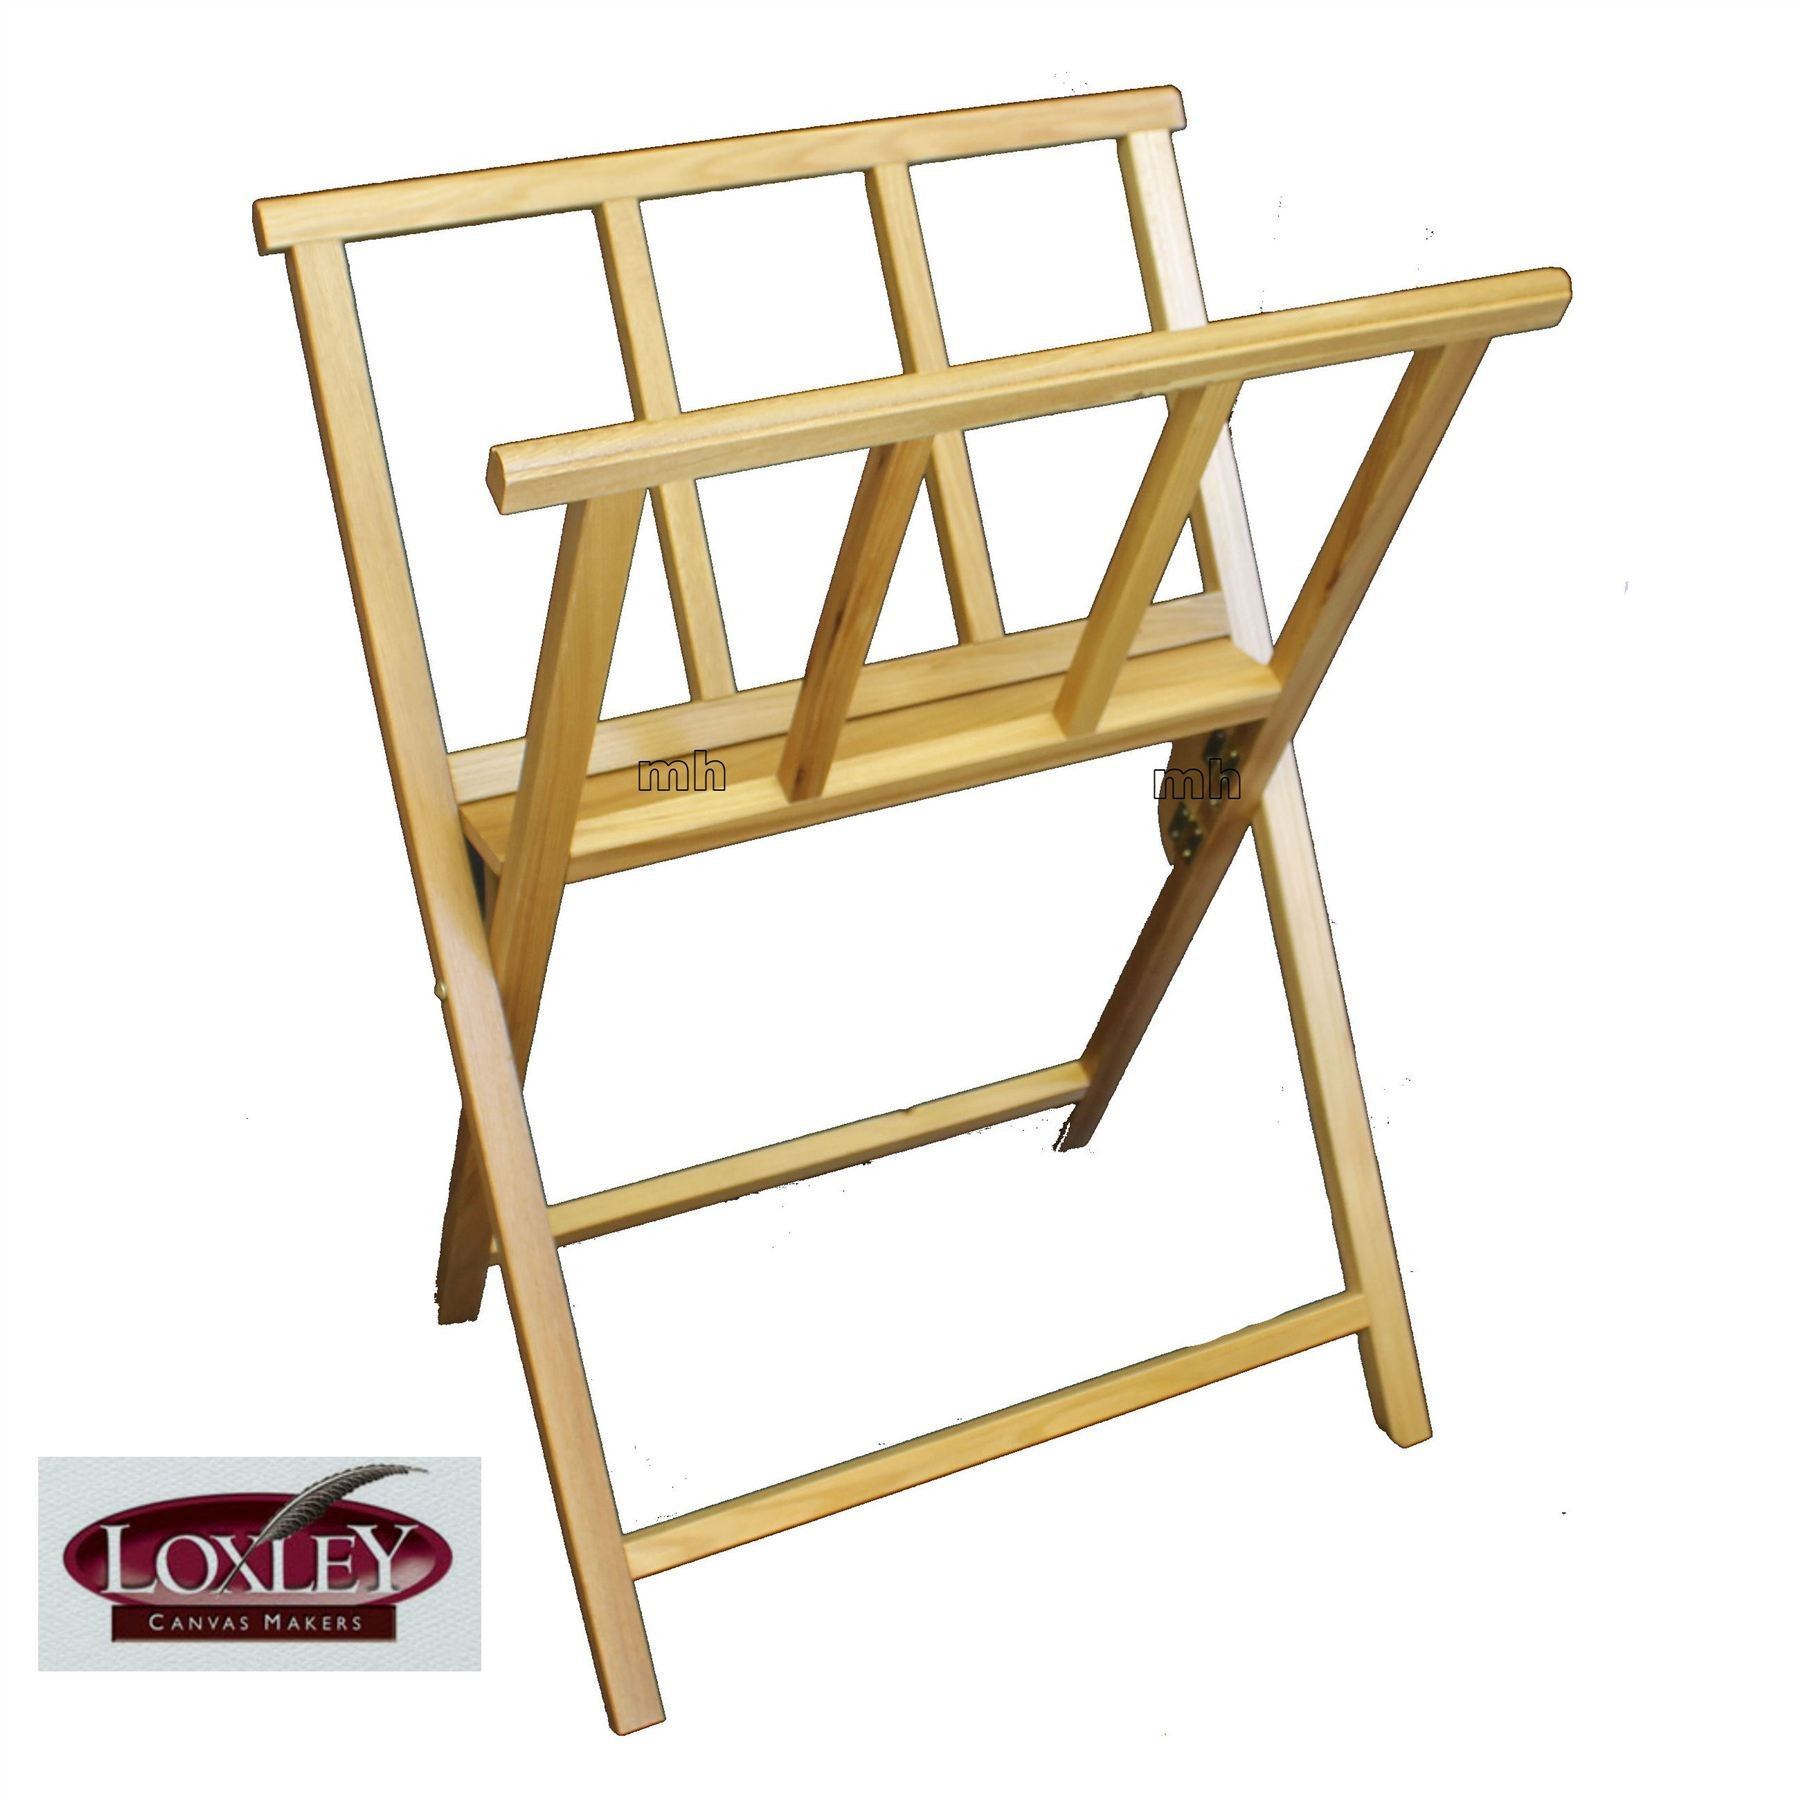 Loxley artist folding wooden storage rack